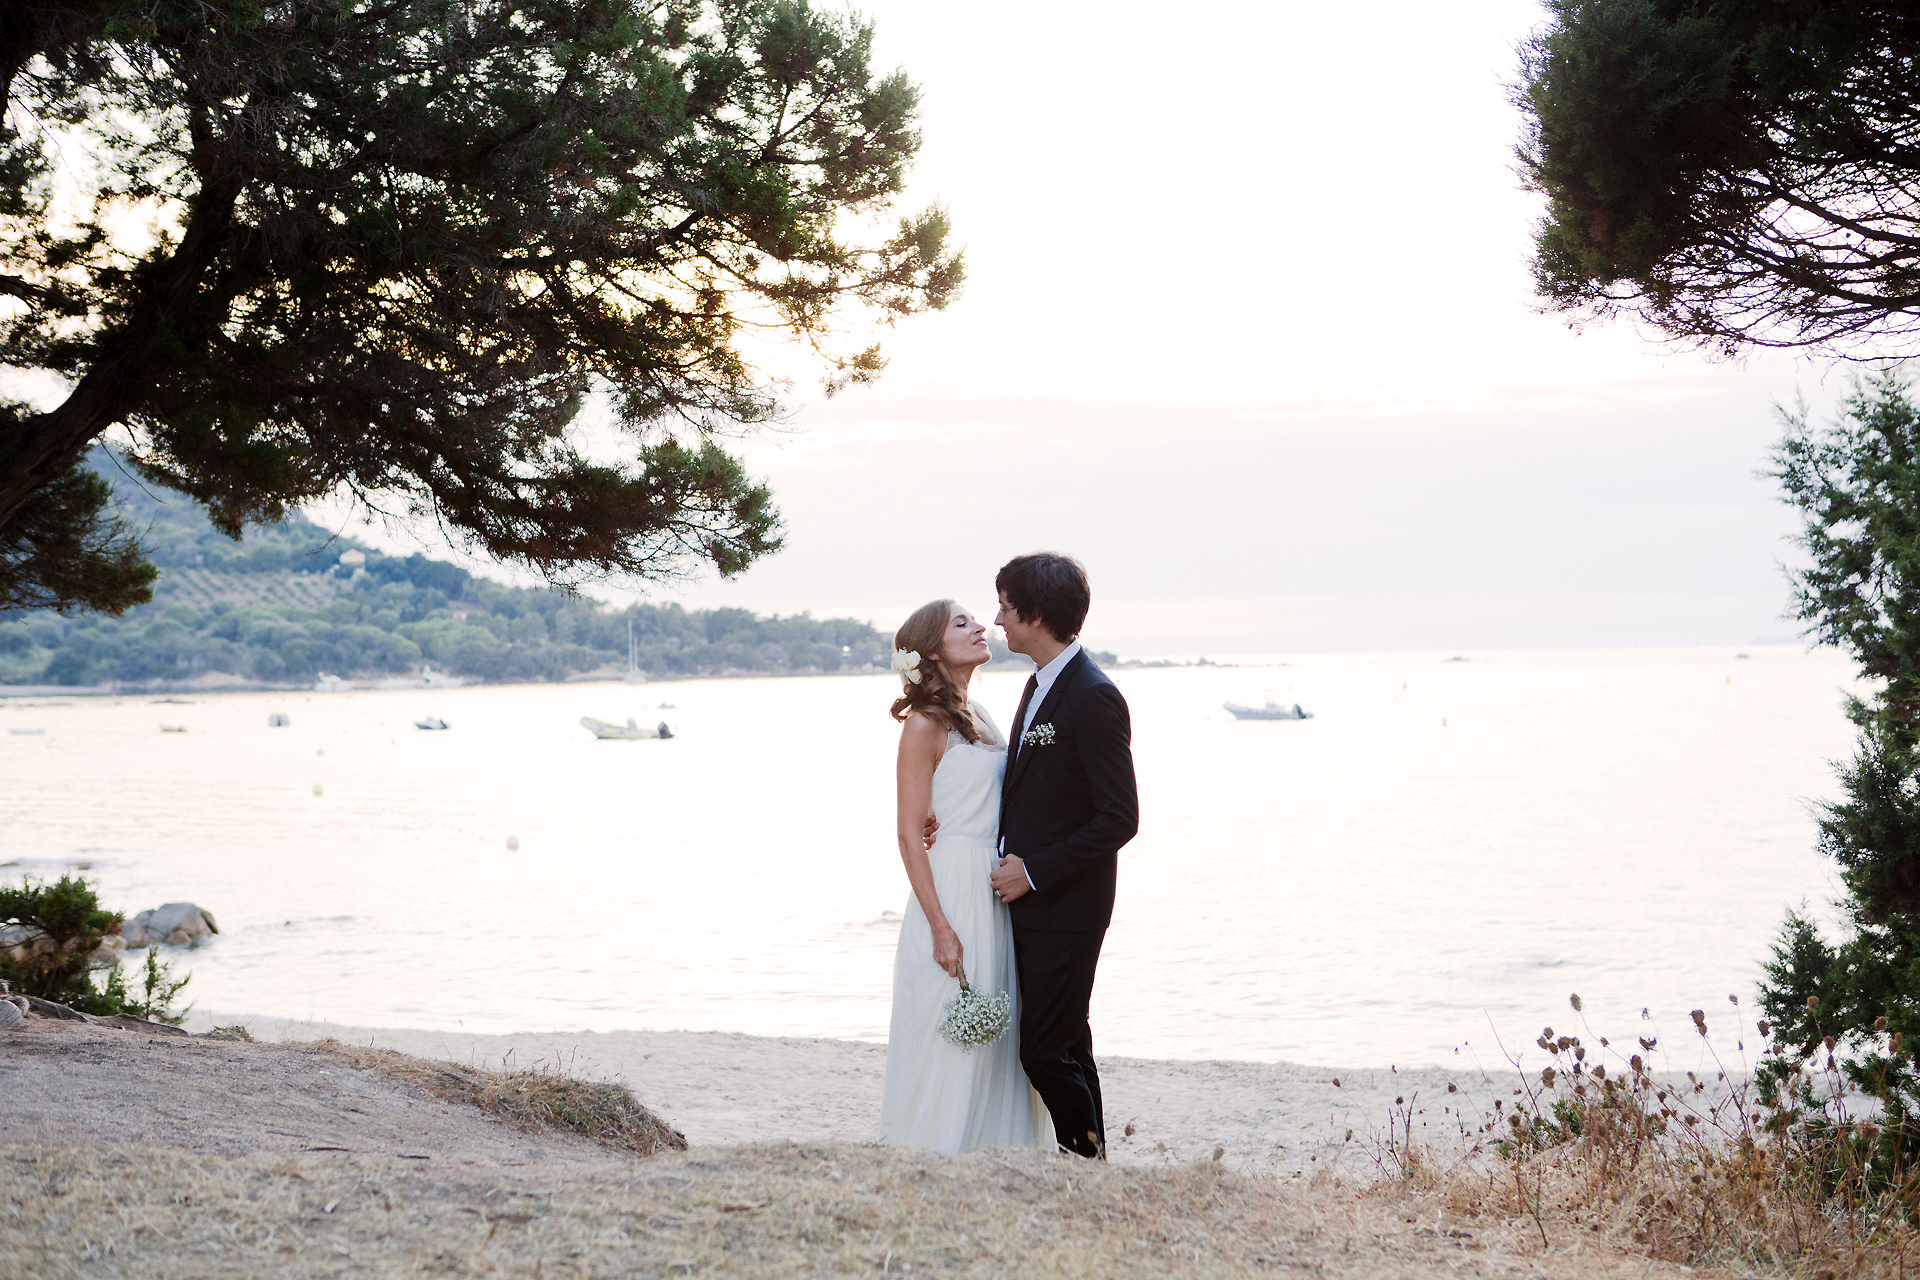 photographe de mariage en corse photo de couple sur la plage